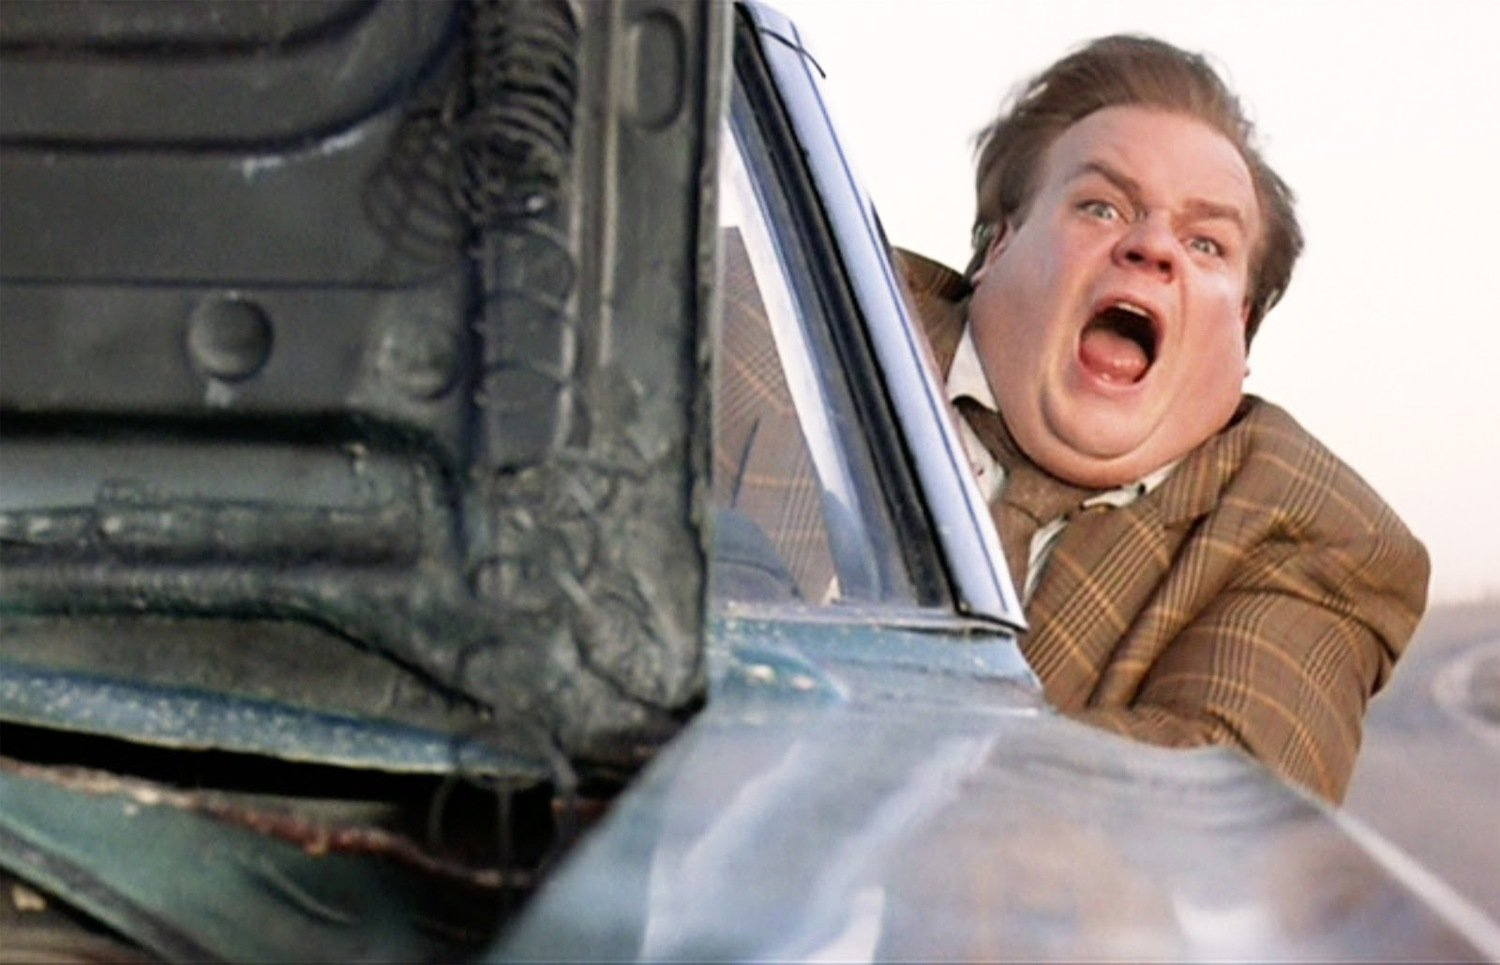 chris-farley-stars-in-mission-impossible-rouge-nation-mashup-trailer